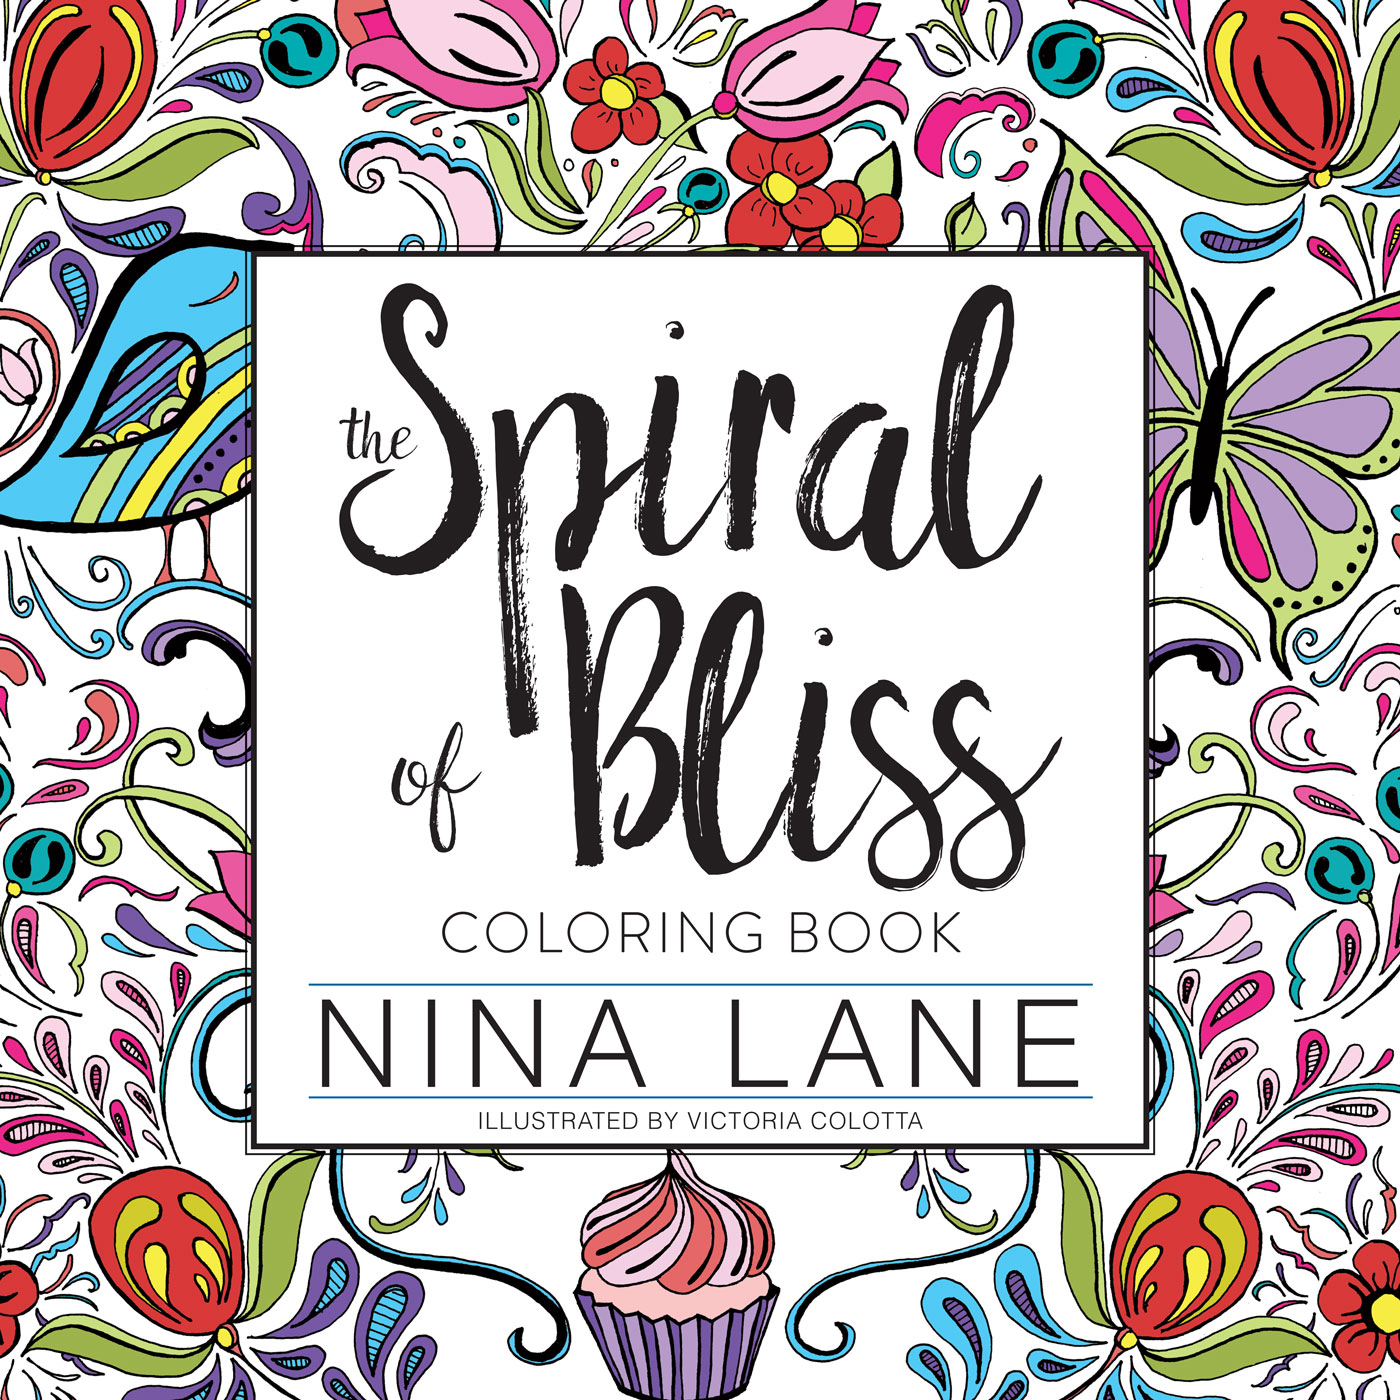 The SPIRAL OF BLISS COLORING BOOK IS LIVE!